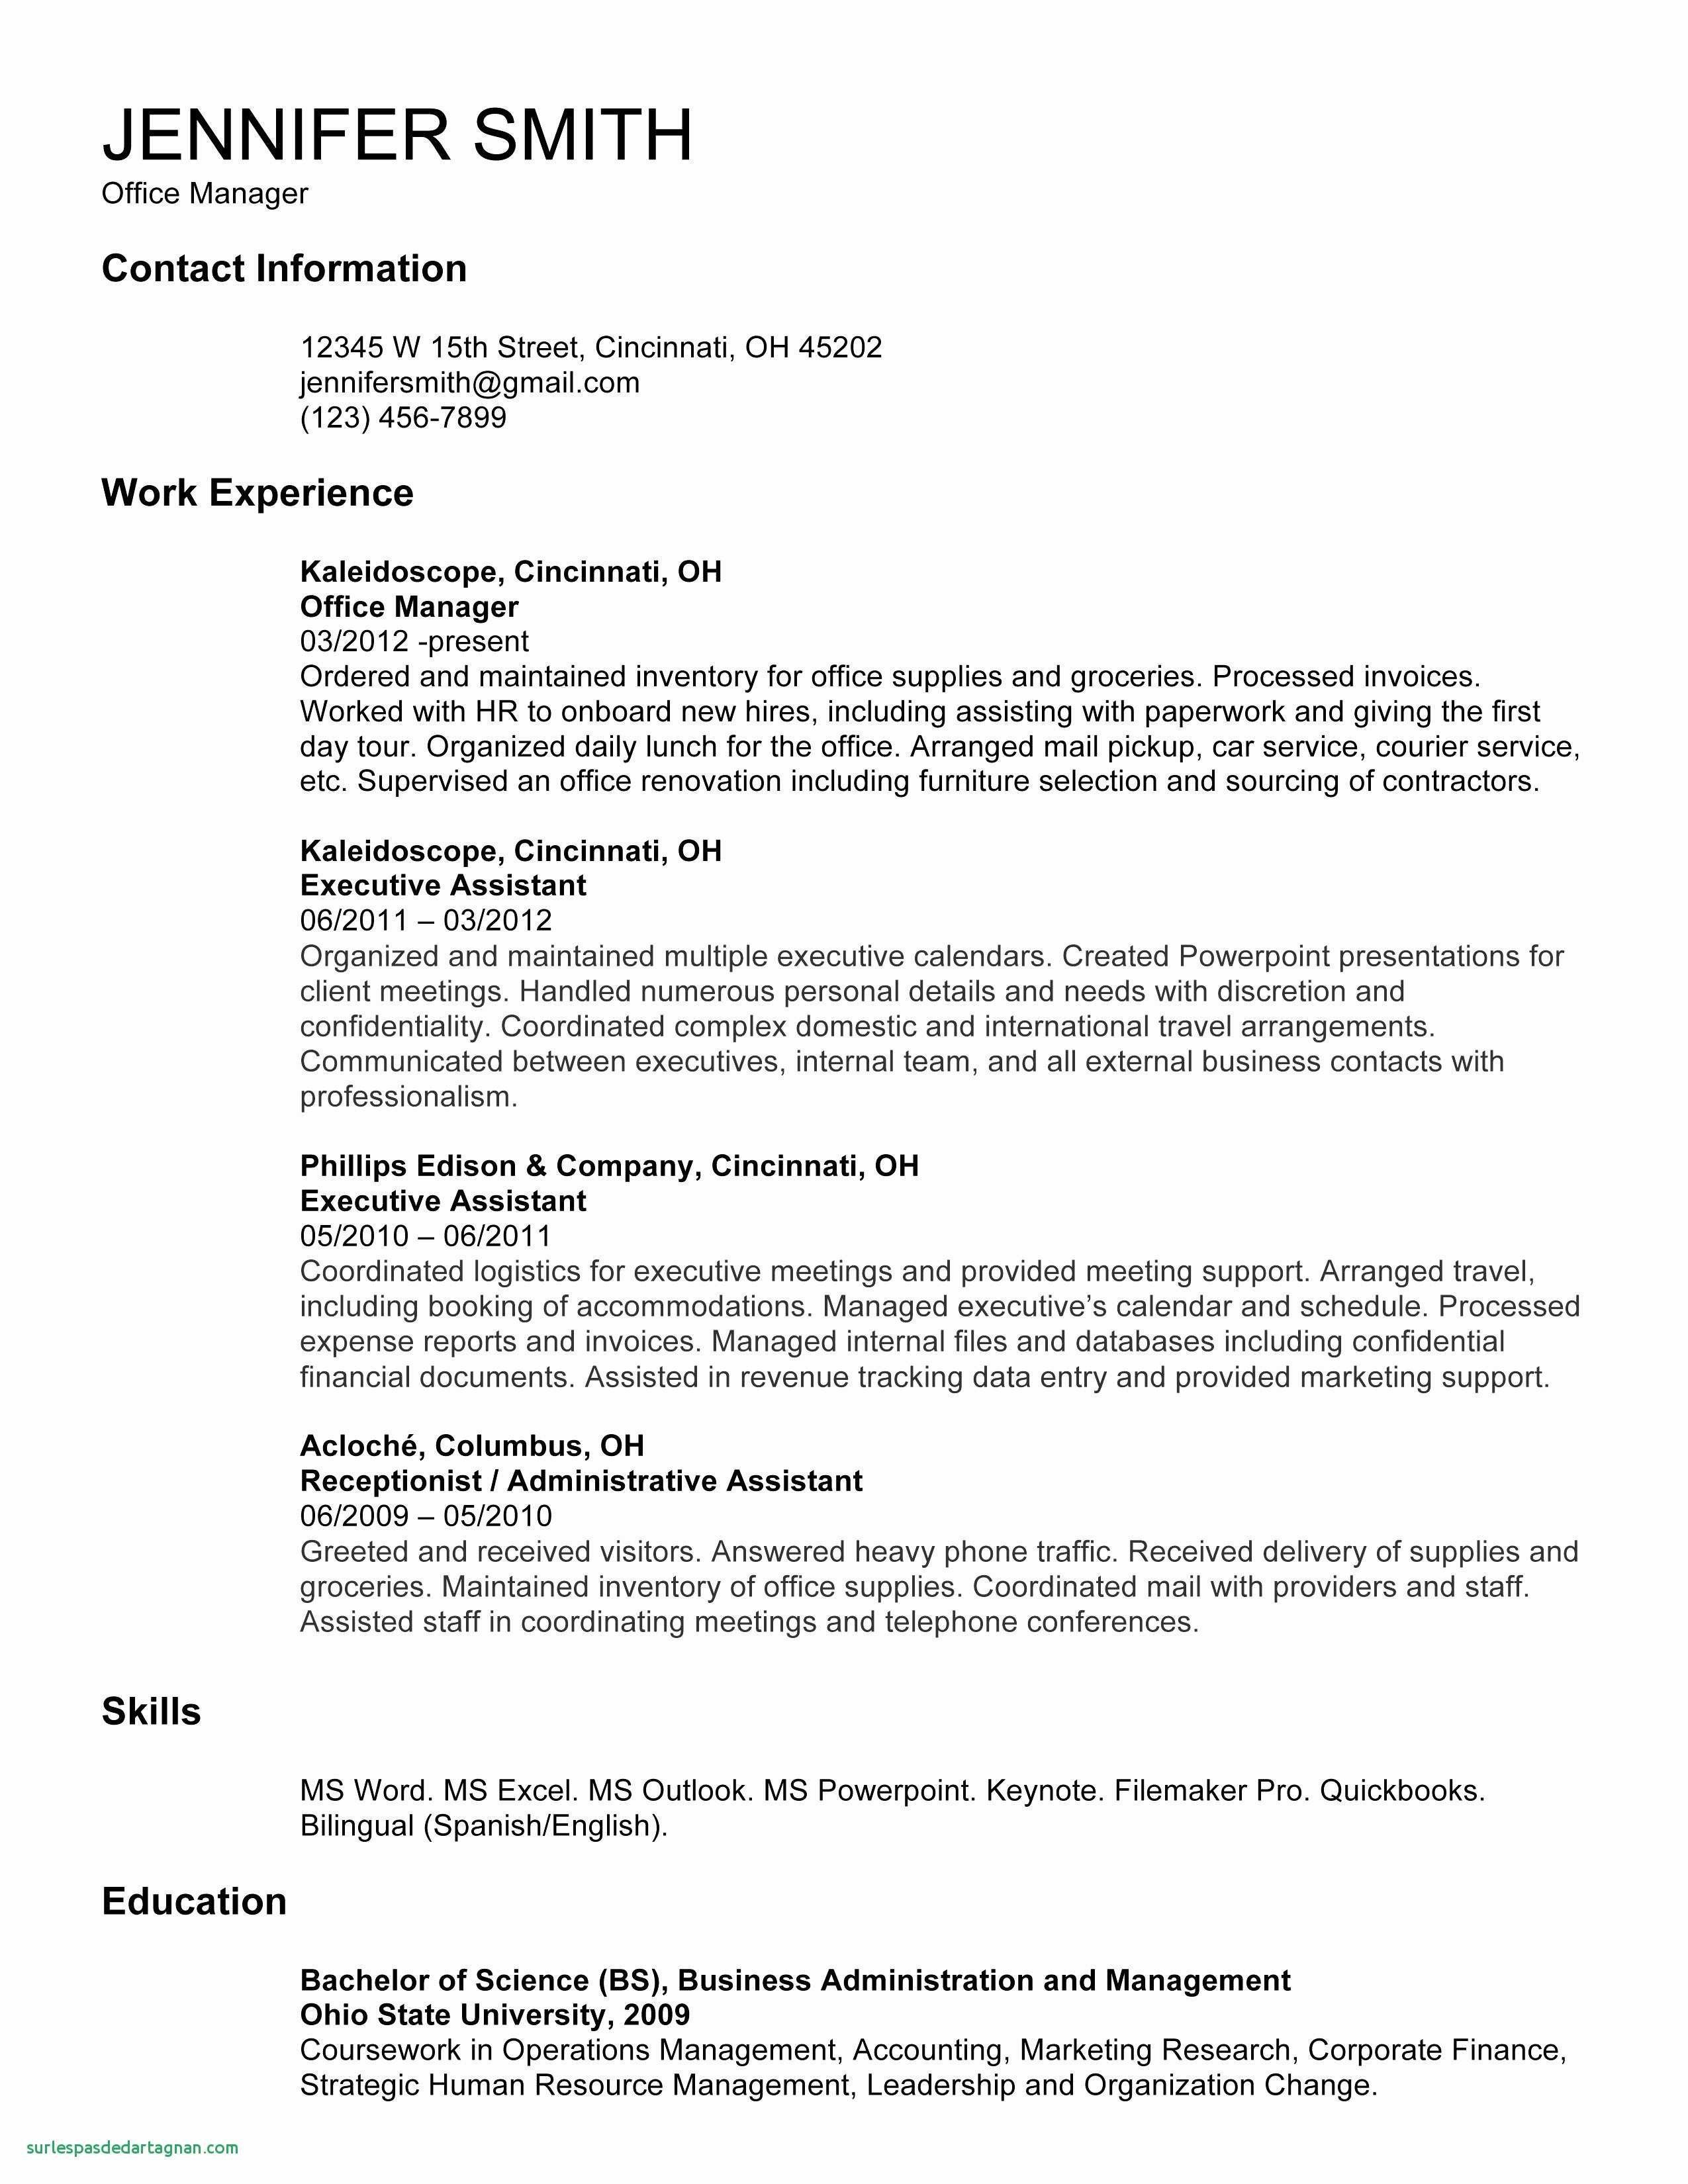 Free Resume Templates Download - Resume Template Download Free Unique ¢Ë†Å¡ Resume Template Download